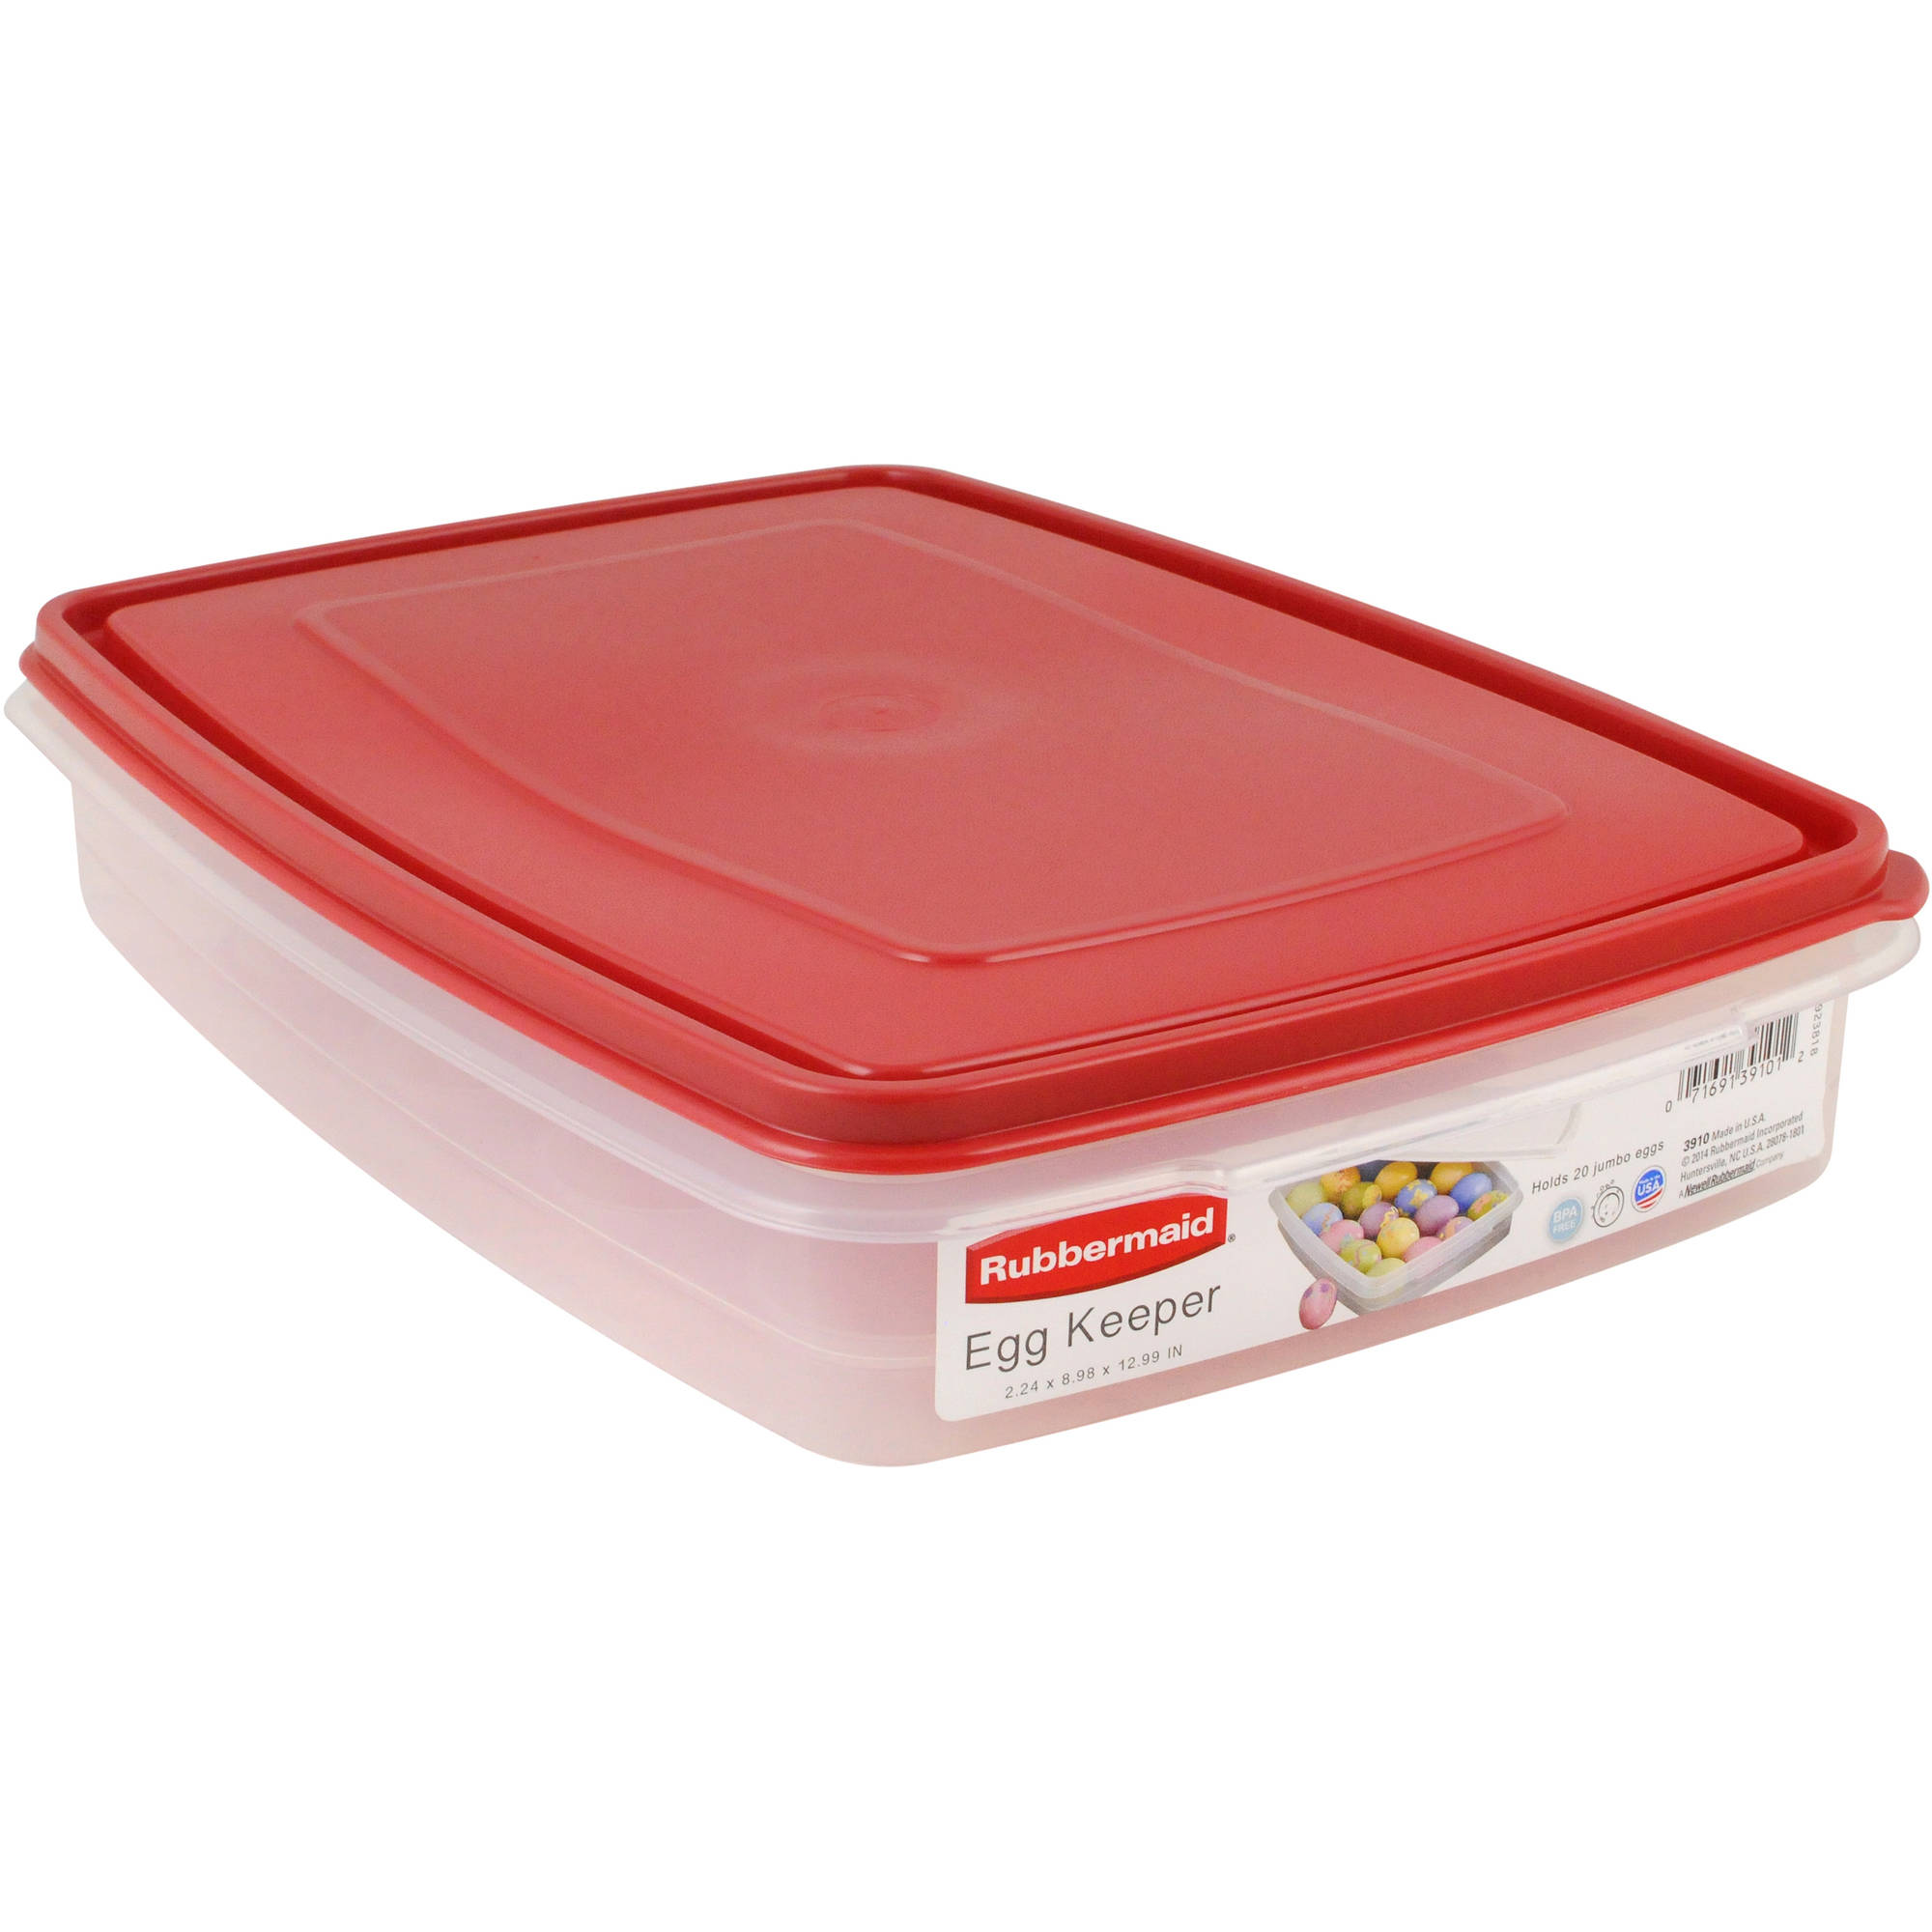 Rubbermaid Egg and Food Storage Container, Red